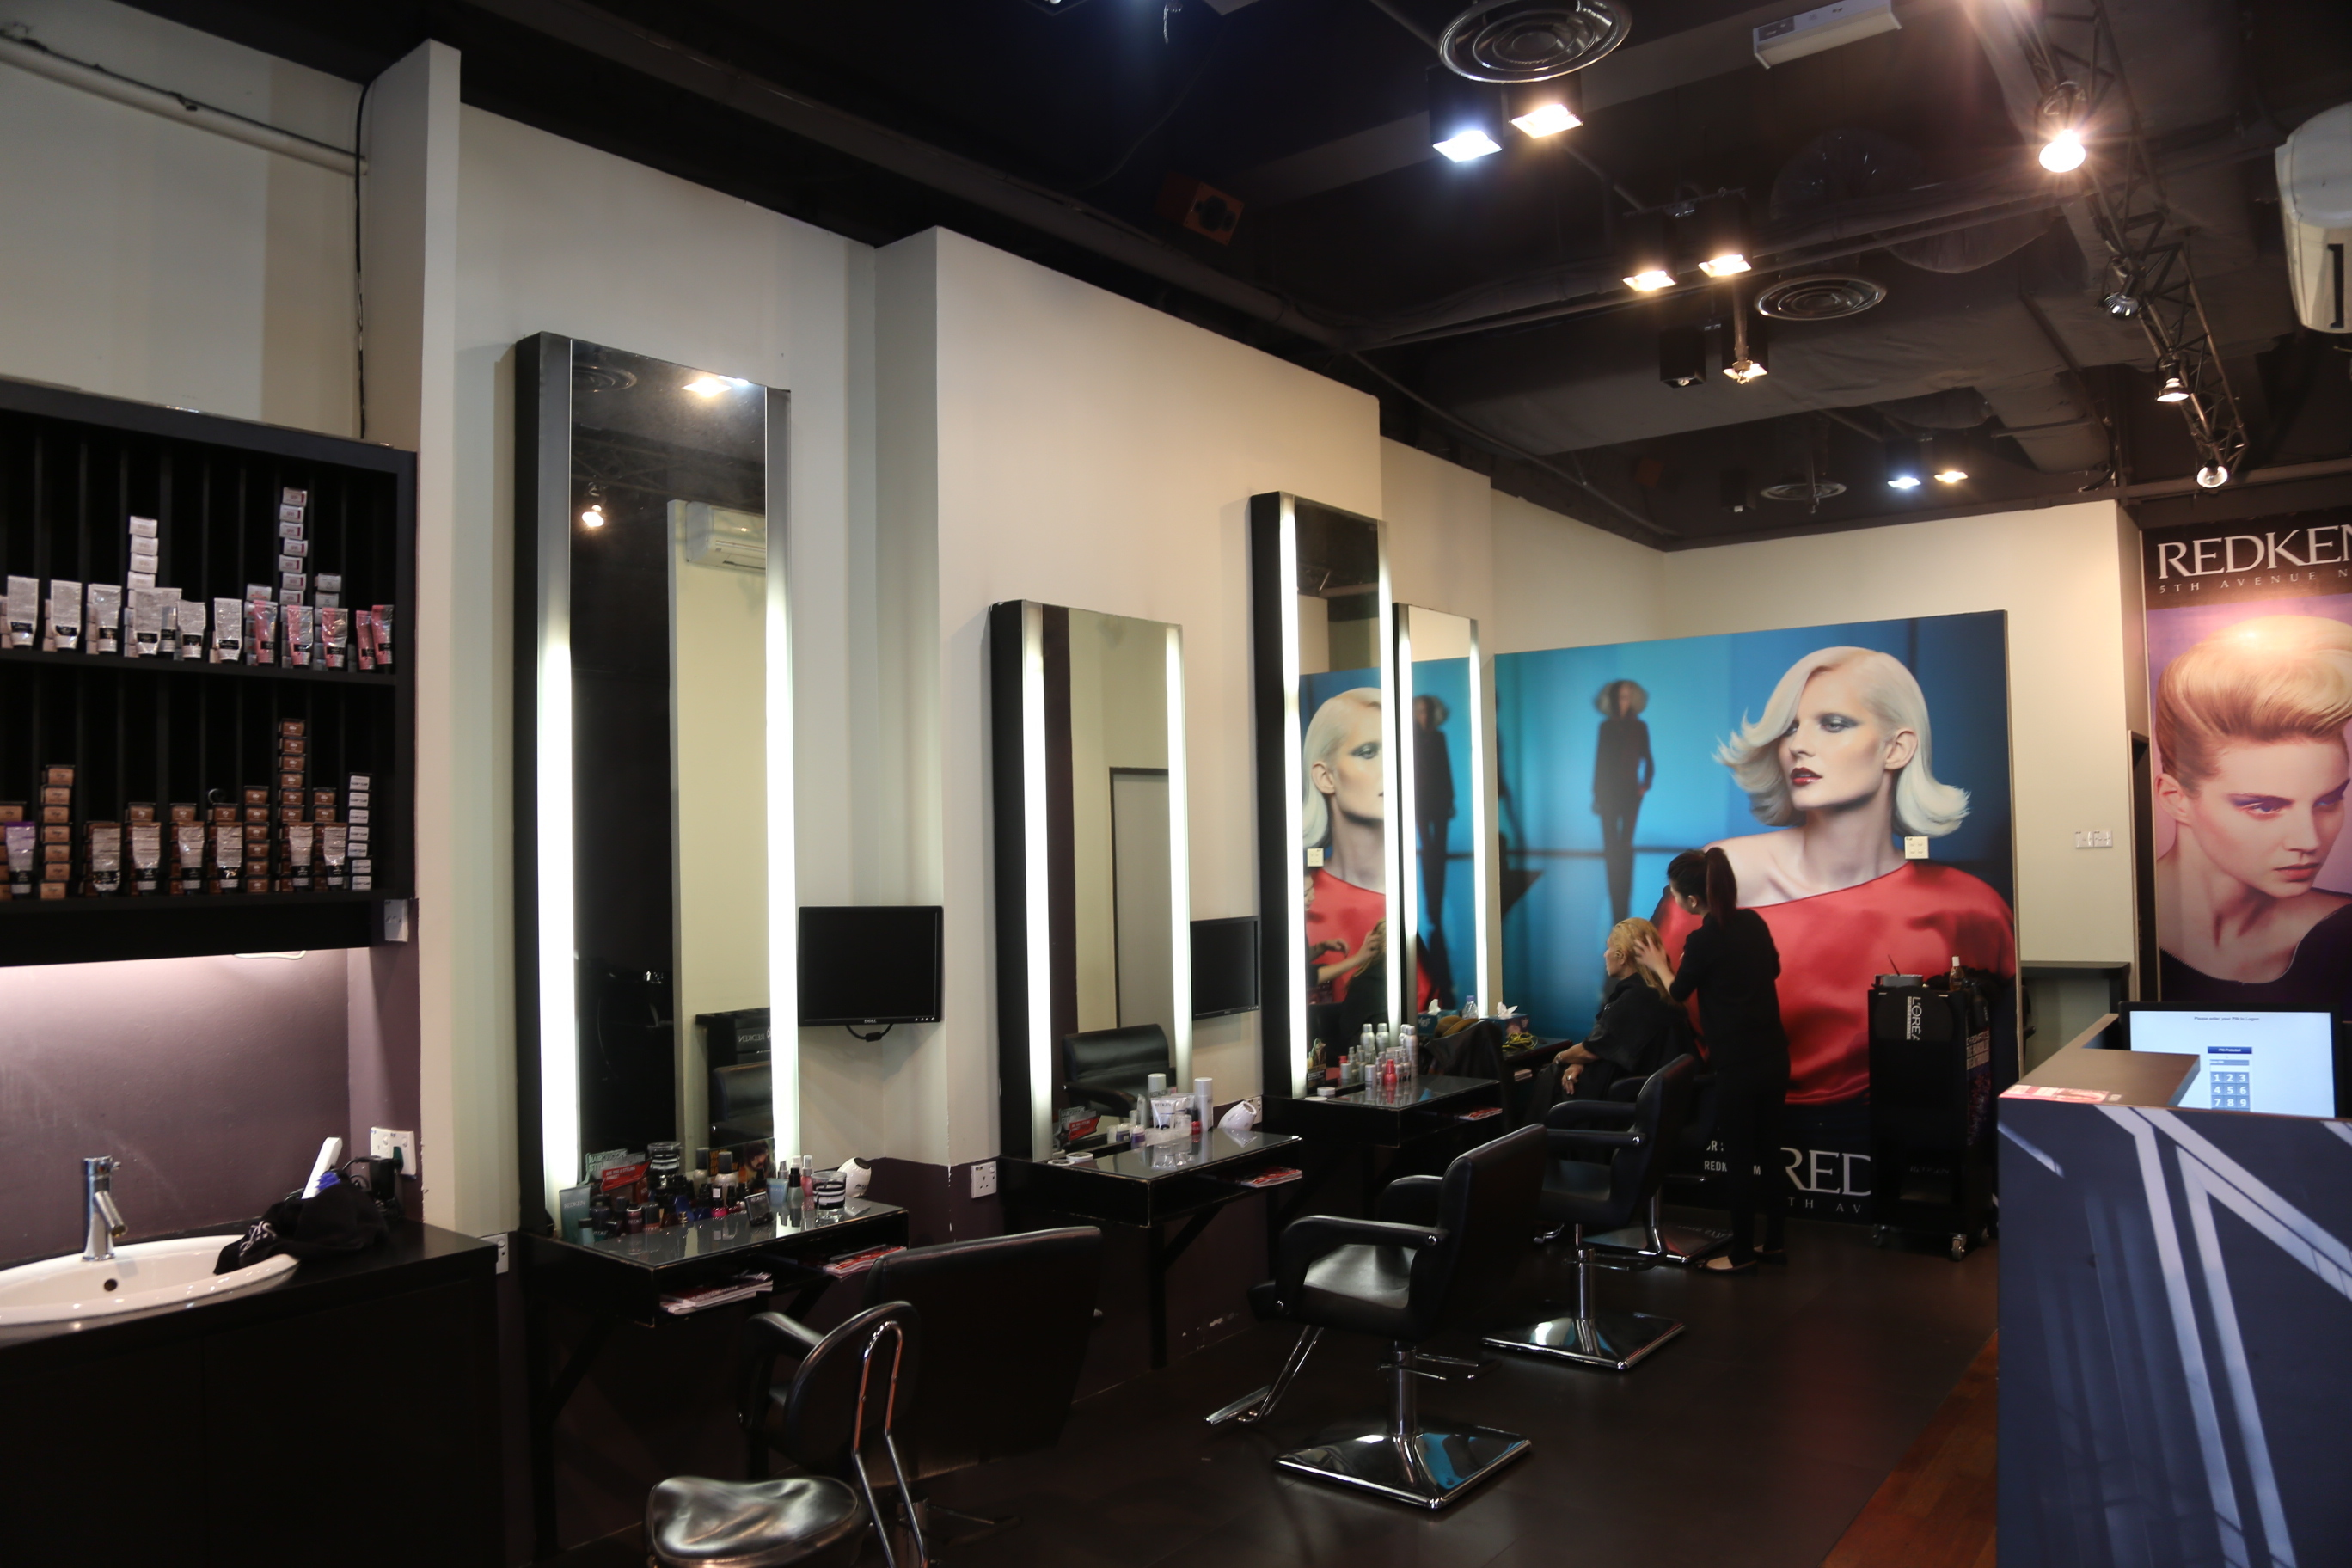 hd wallpapers hair salon kuala lumpur pattern6design3.ml